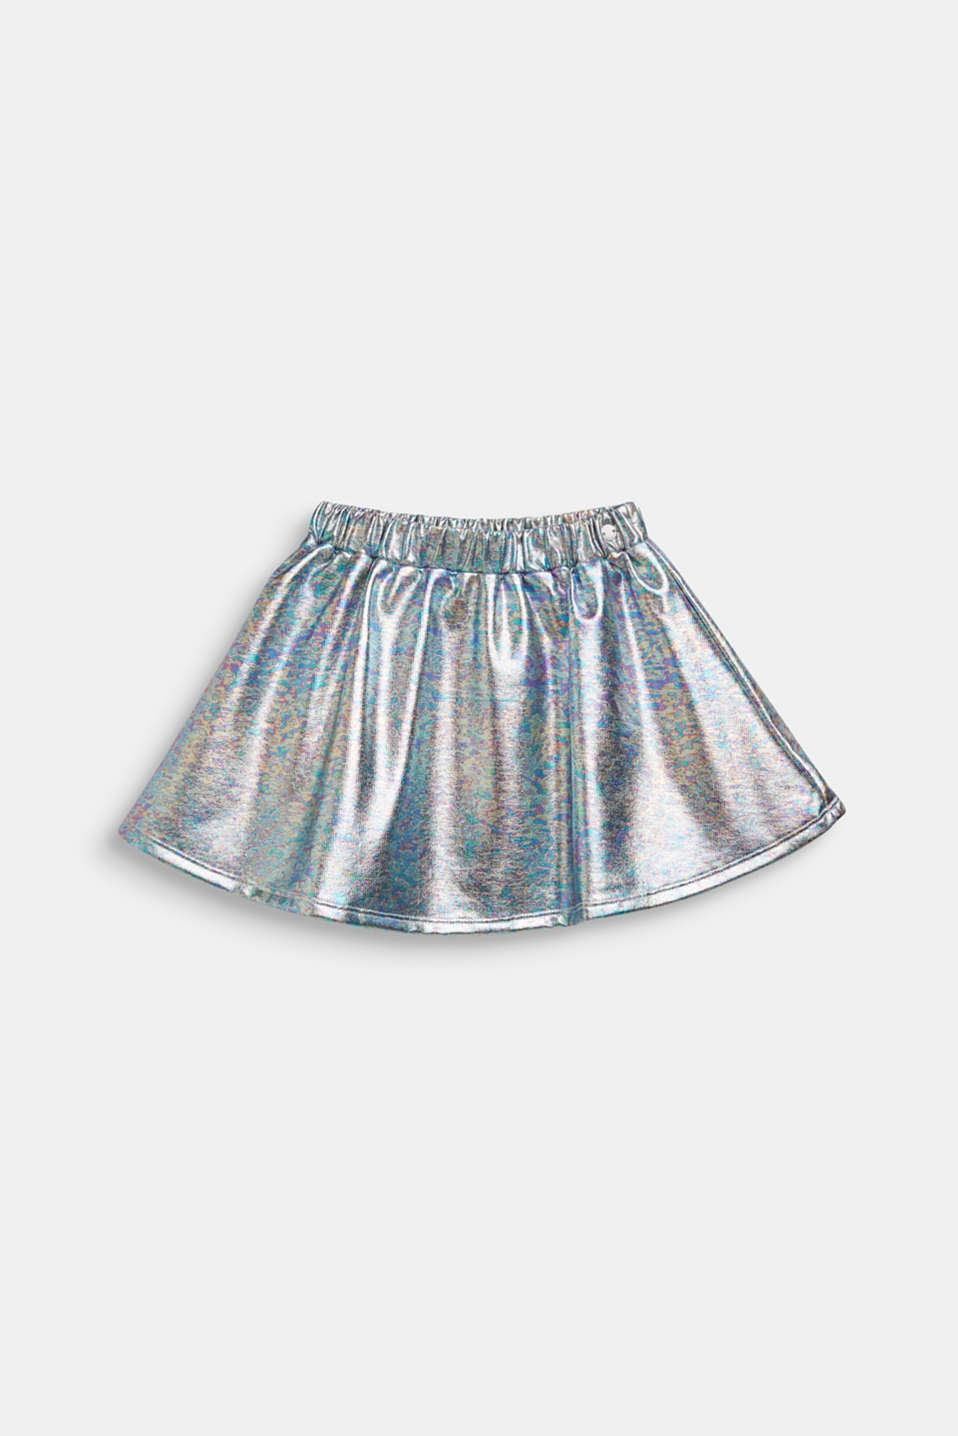 Esprit - Rok met changerende metallic look